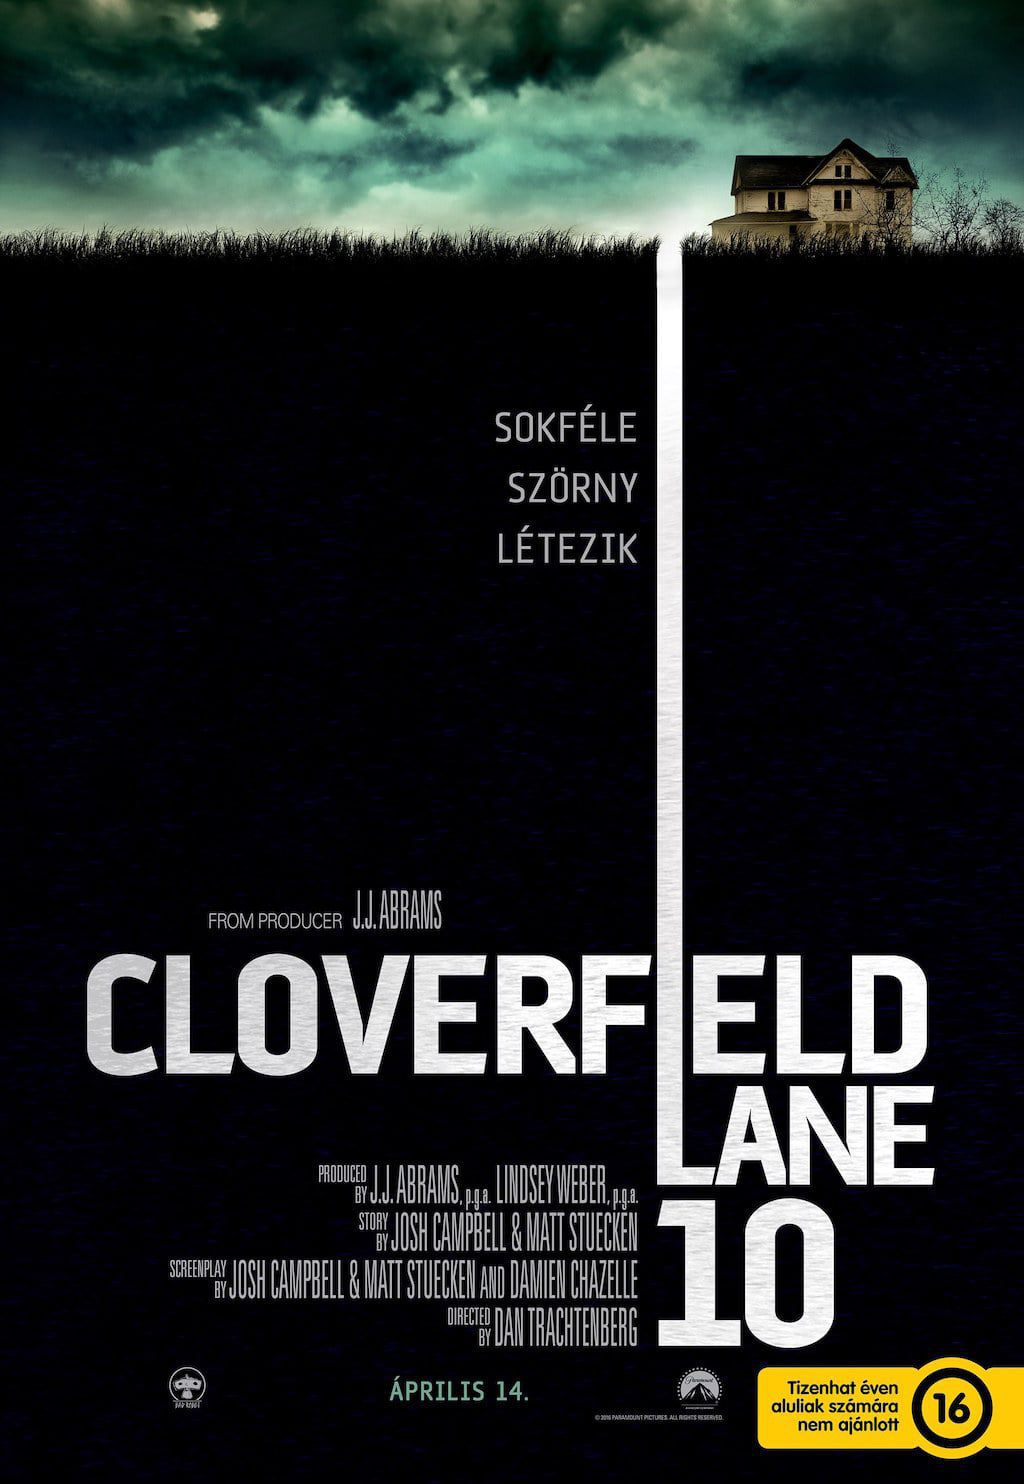 Cloverfield Lane 10 16 2016 225 Prilis 14